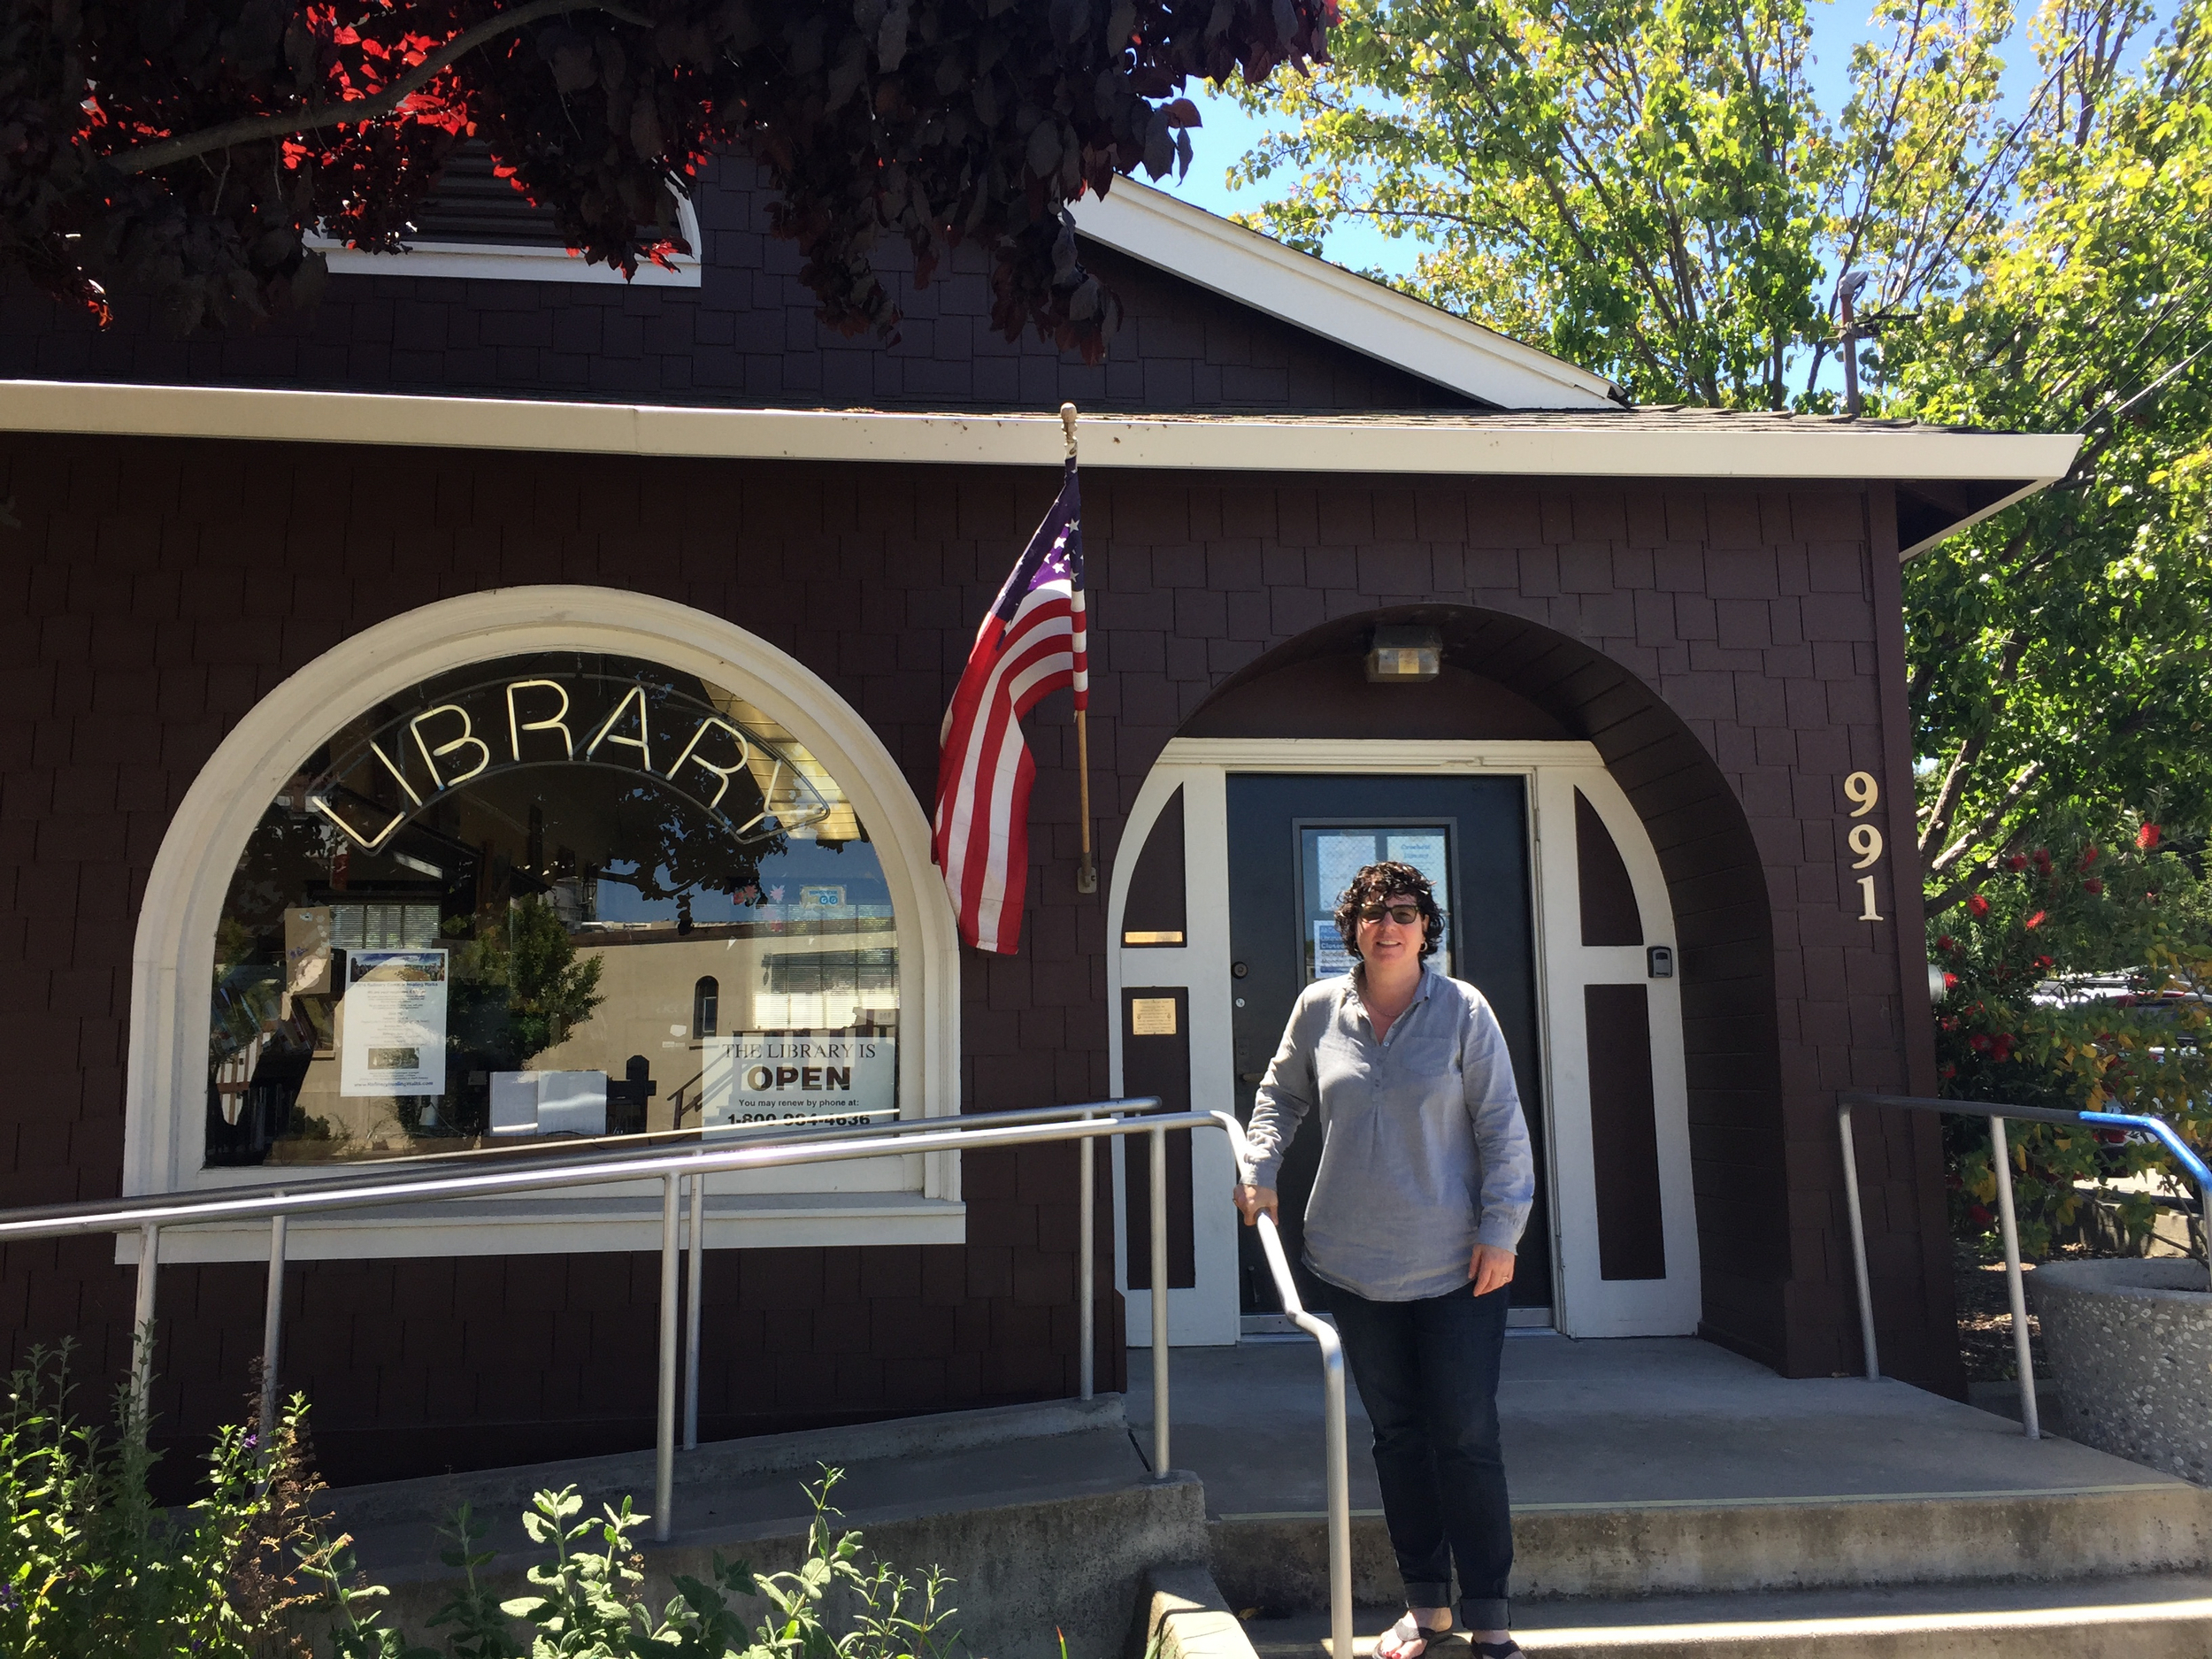 Producer Lucie Faulknor poses in front of the Crockett Public Library in Contra Costa County.